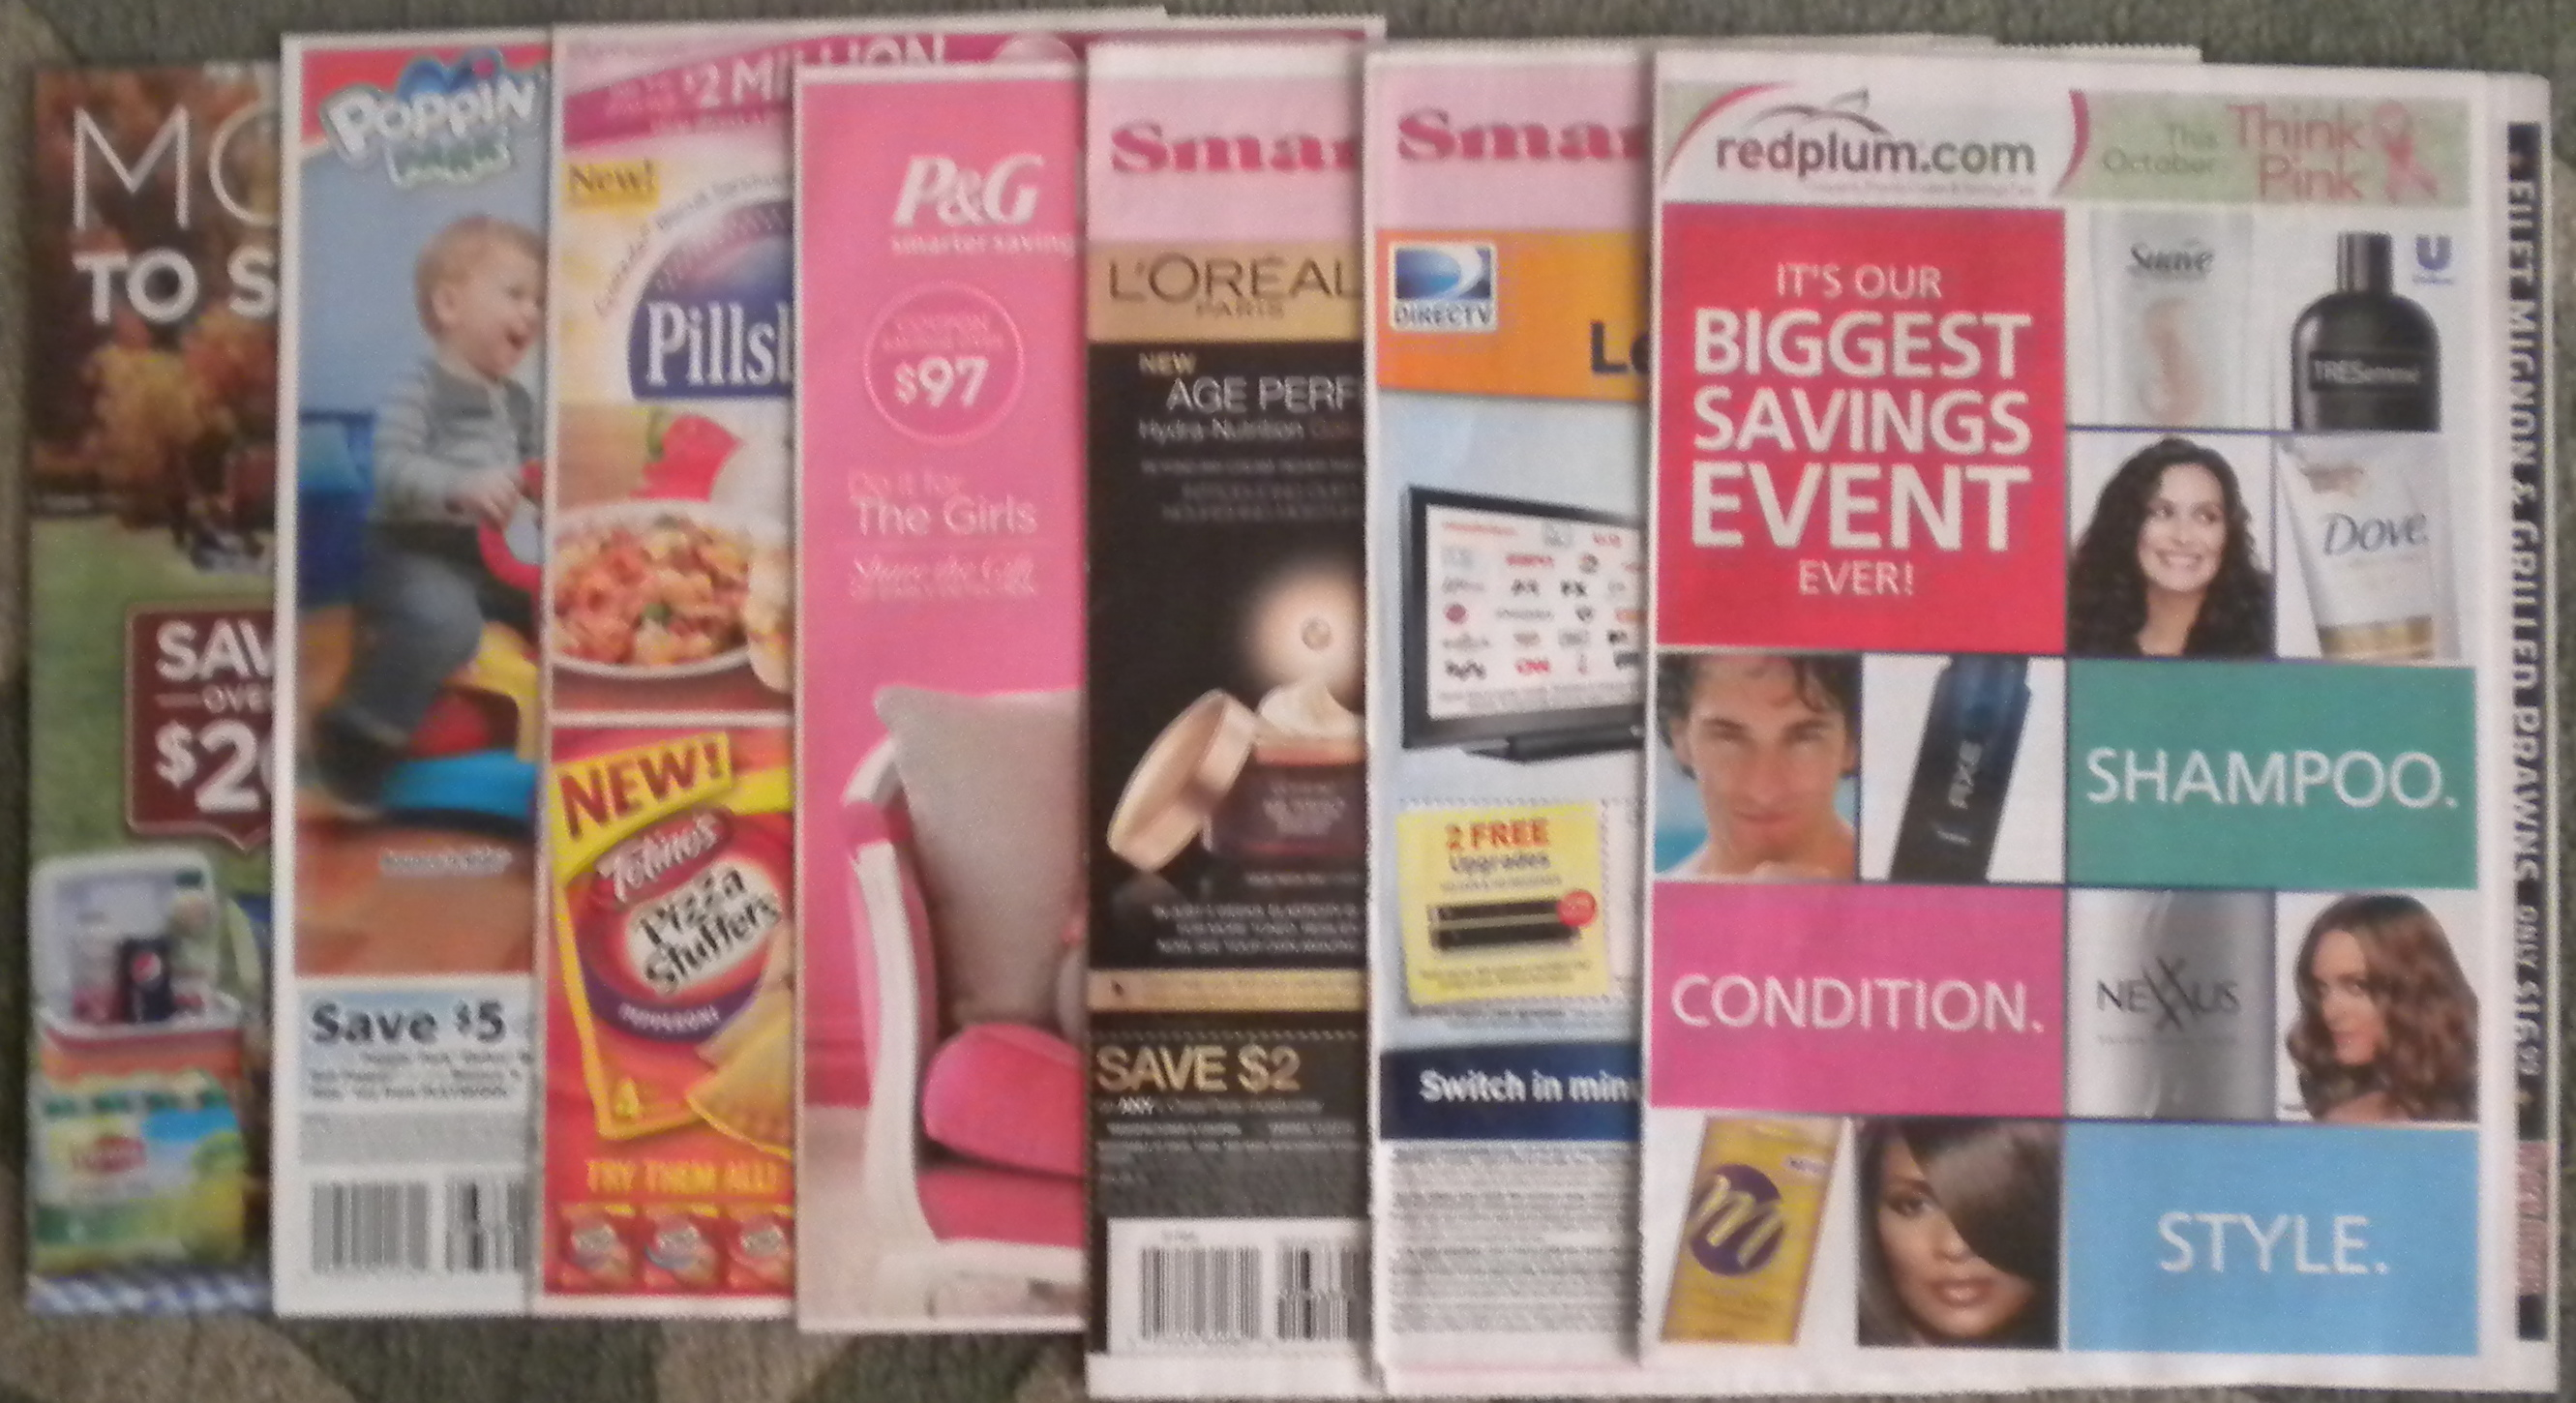 Don't miss any of the Sunday Paper Coupon Inserts. Use this / Sunday coupons inserts schedule to plan ahead your weekly grocery shopping trip.